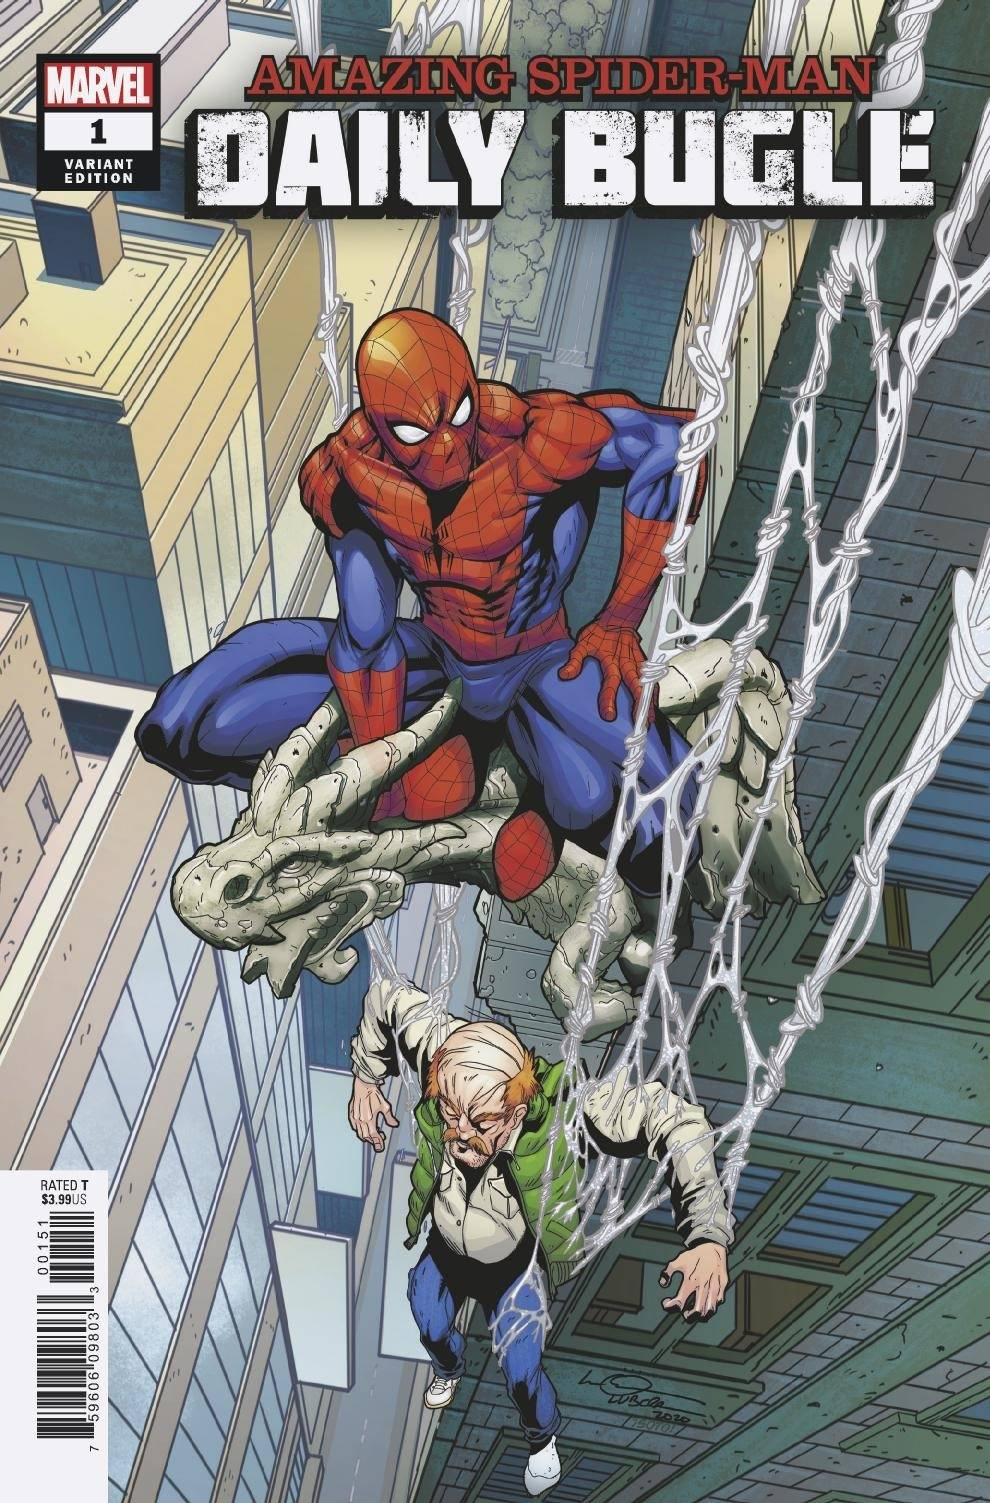 Amazing Spider-Man: Daily Bugle (2020) #1 (of 5) Logan Lubera Cover